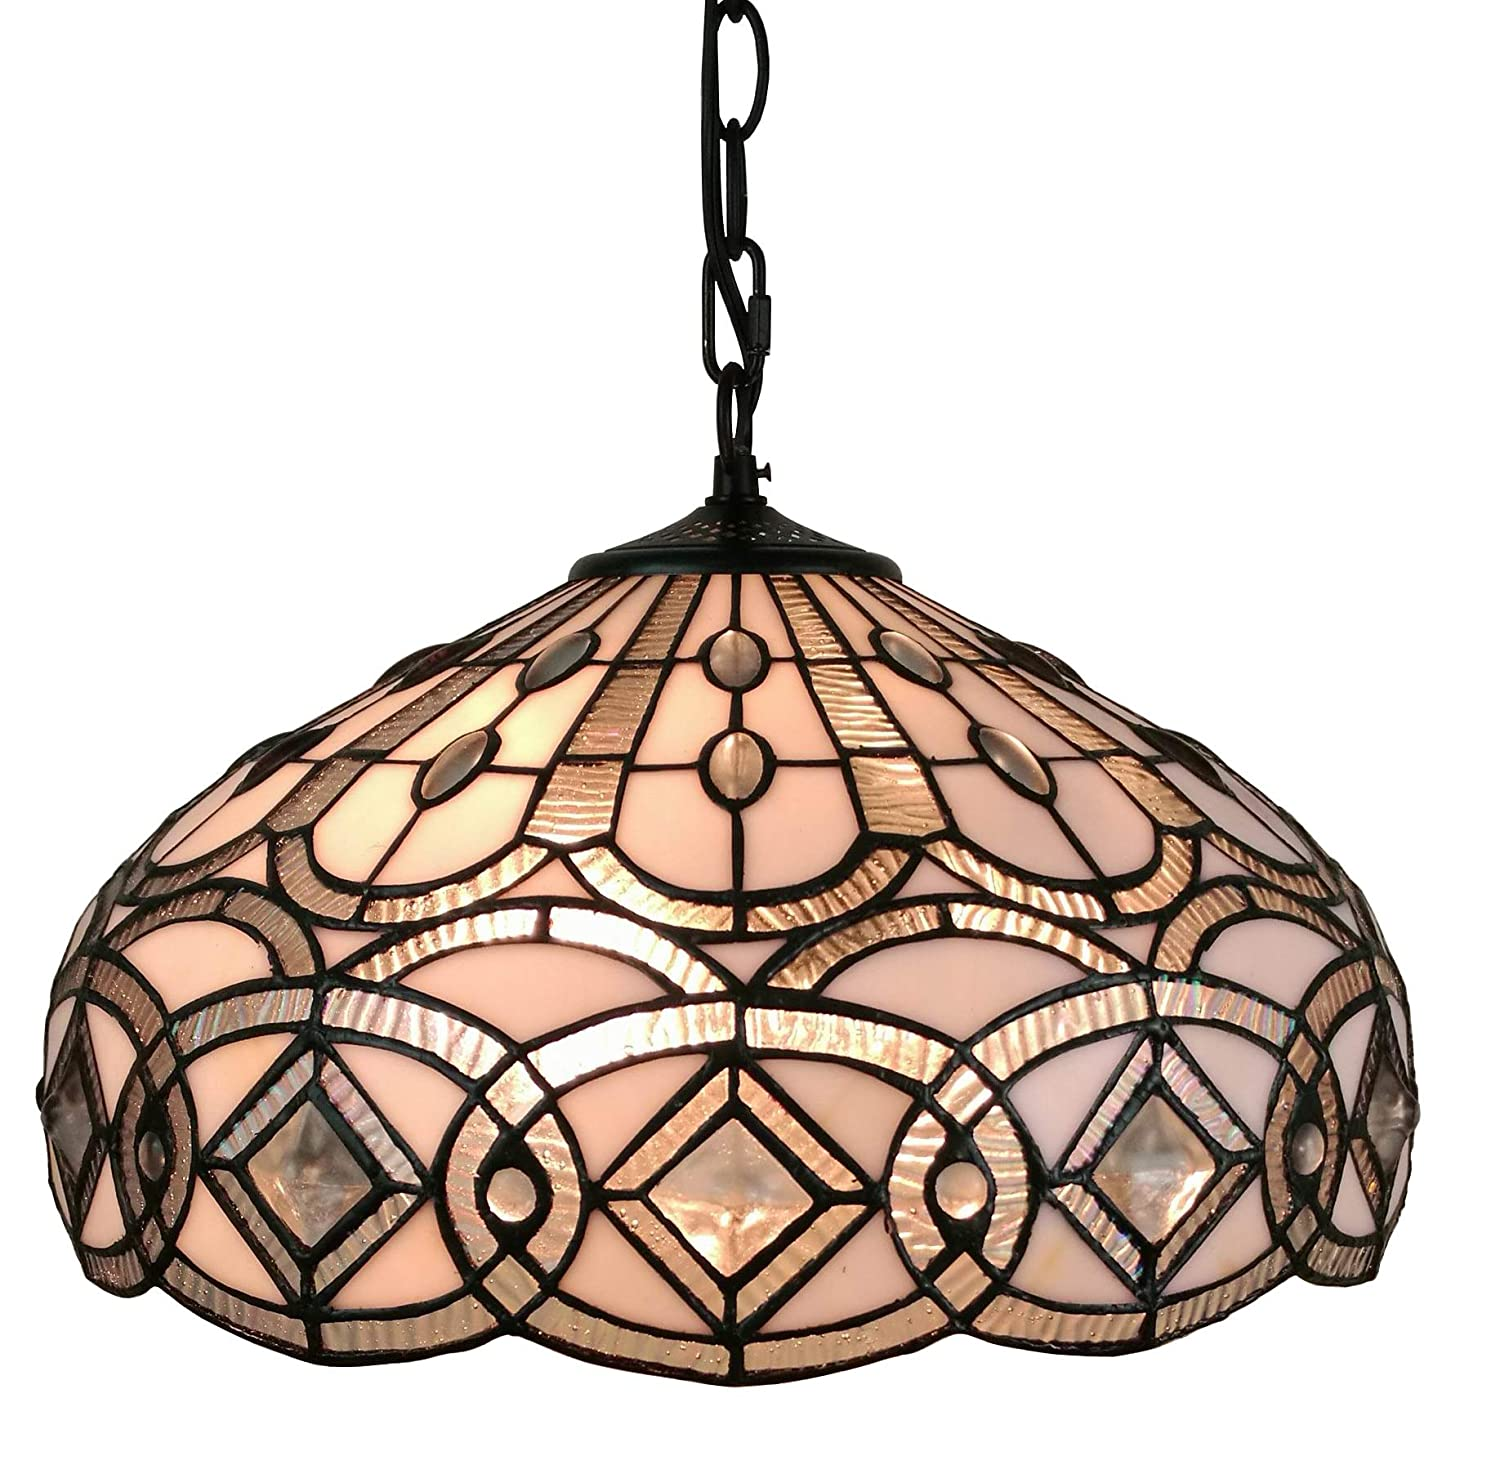 Amora lighting am295hl16 16 inches wide tiffany style white hanging lamp 16